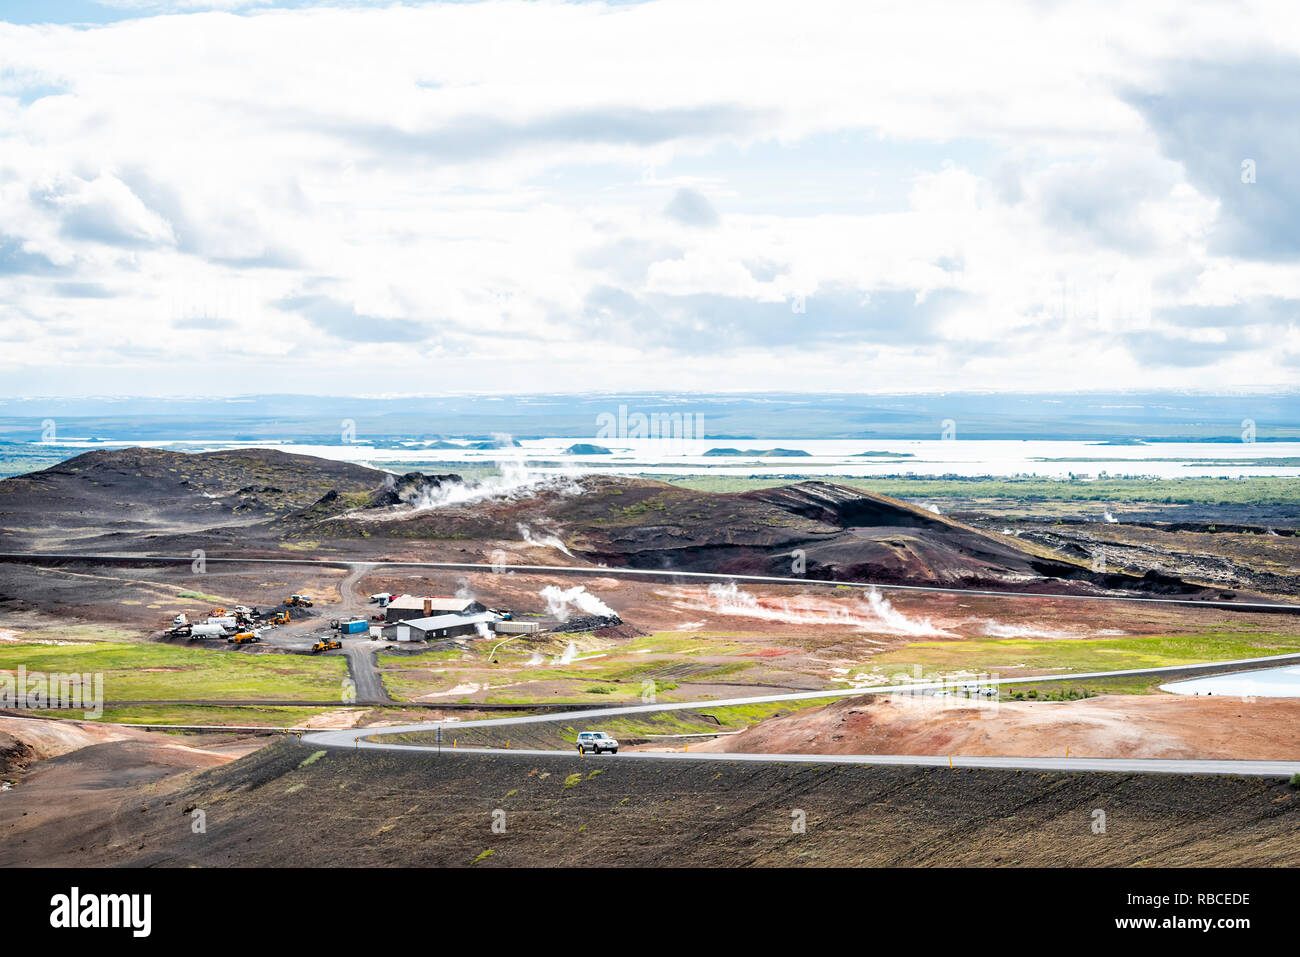 Reykjahlid, Iceland - June 16, 2018: Landscape high angle view of lake Myvatn and fumaroles steam vents during cloudy day and car on road highway - Stock Image